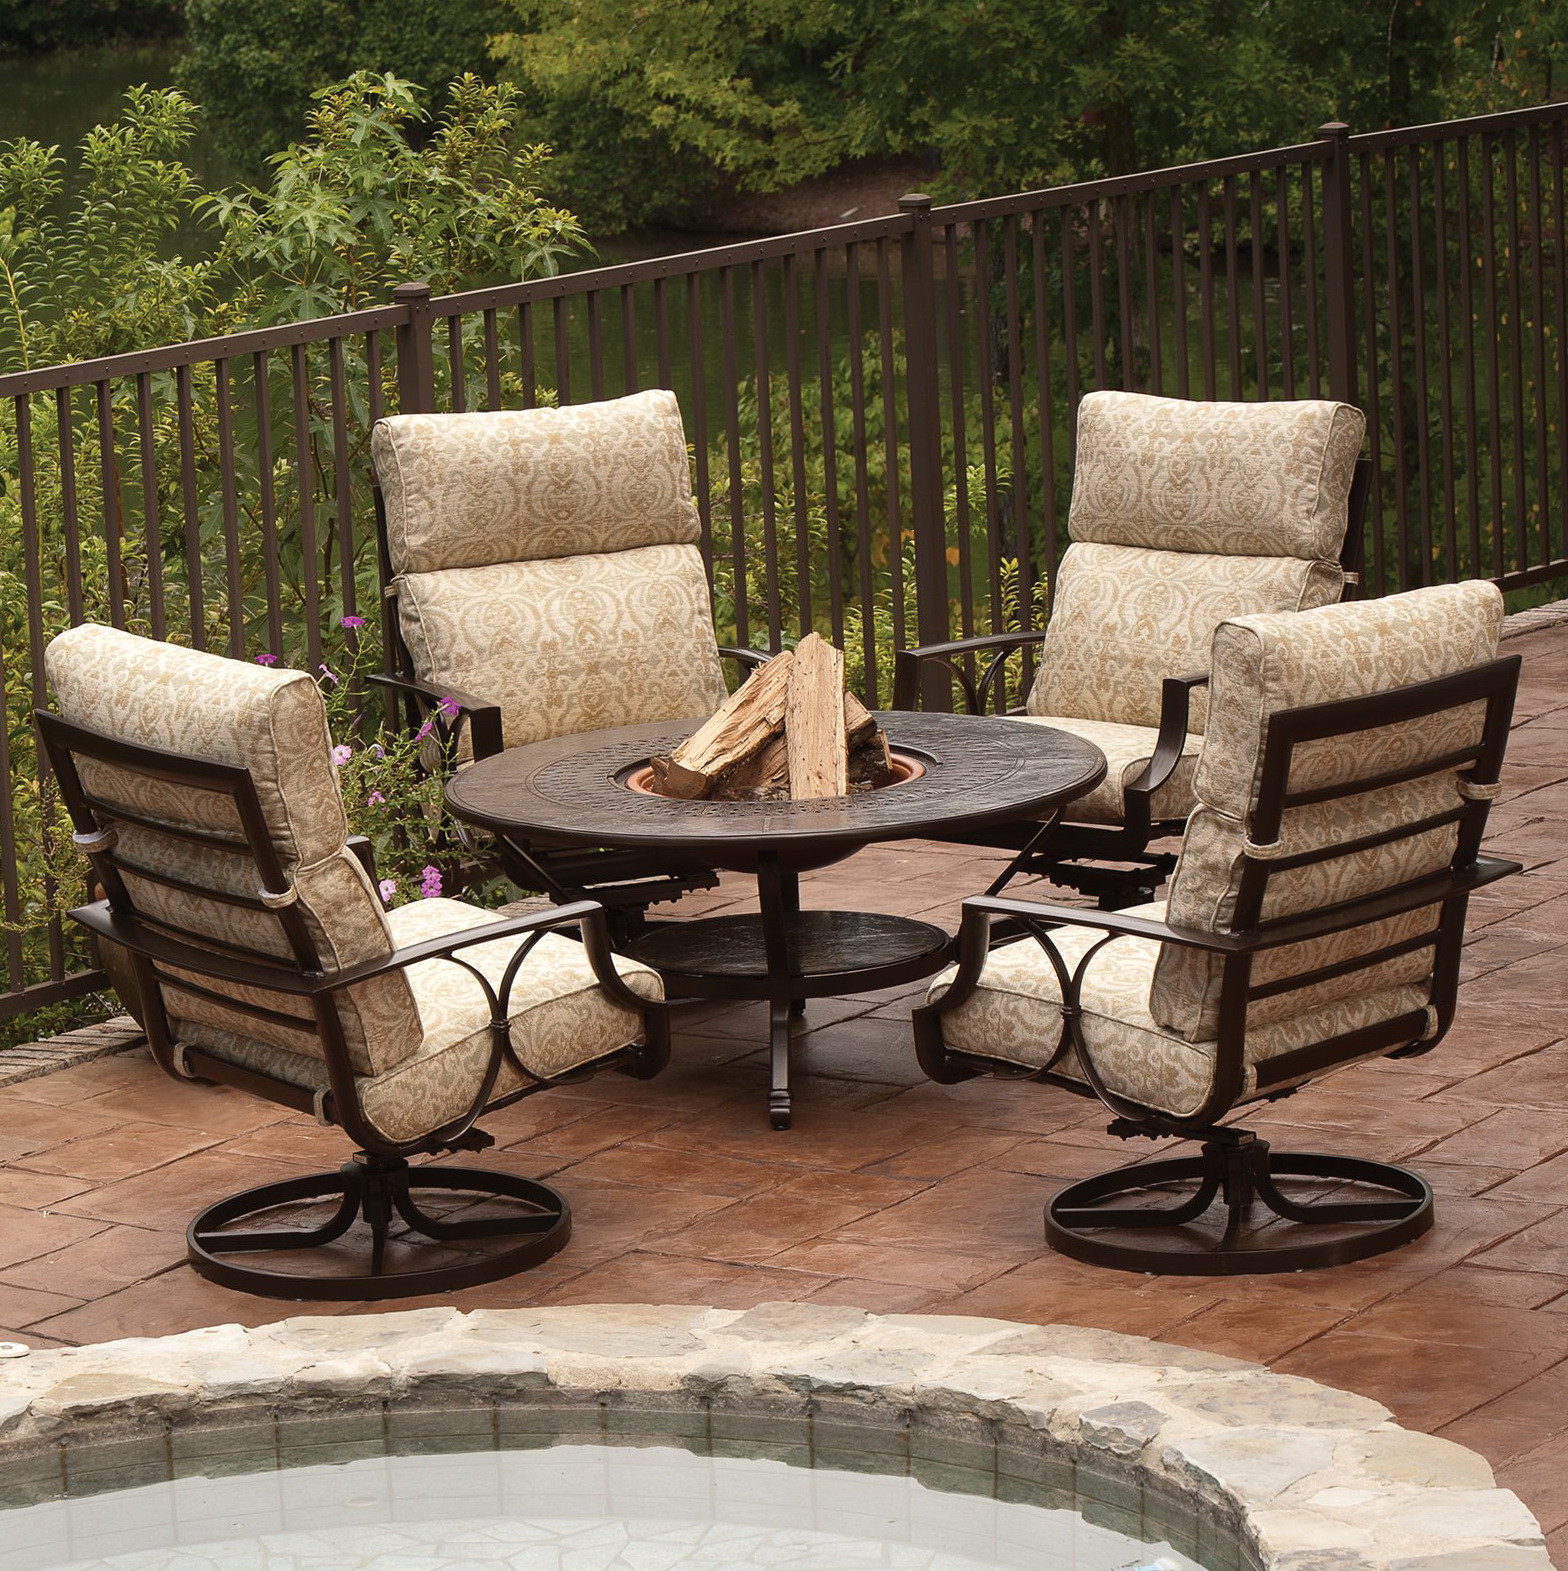 Patio Conversation Sets With Fire Pit